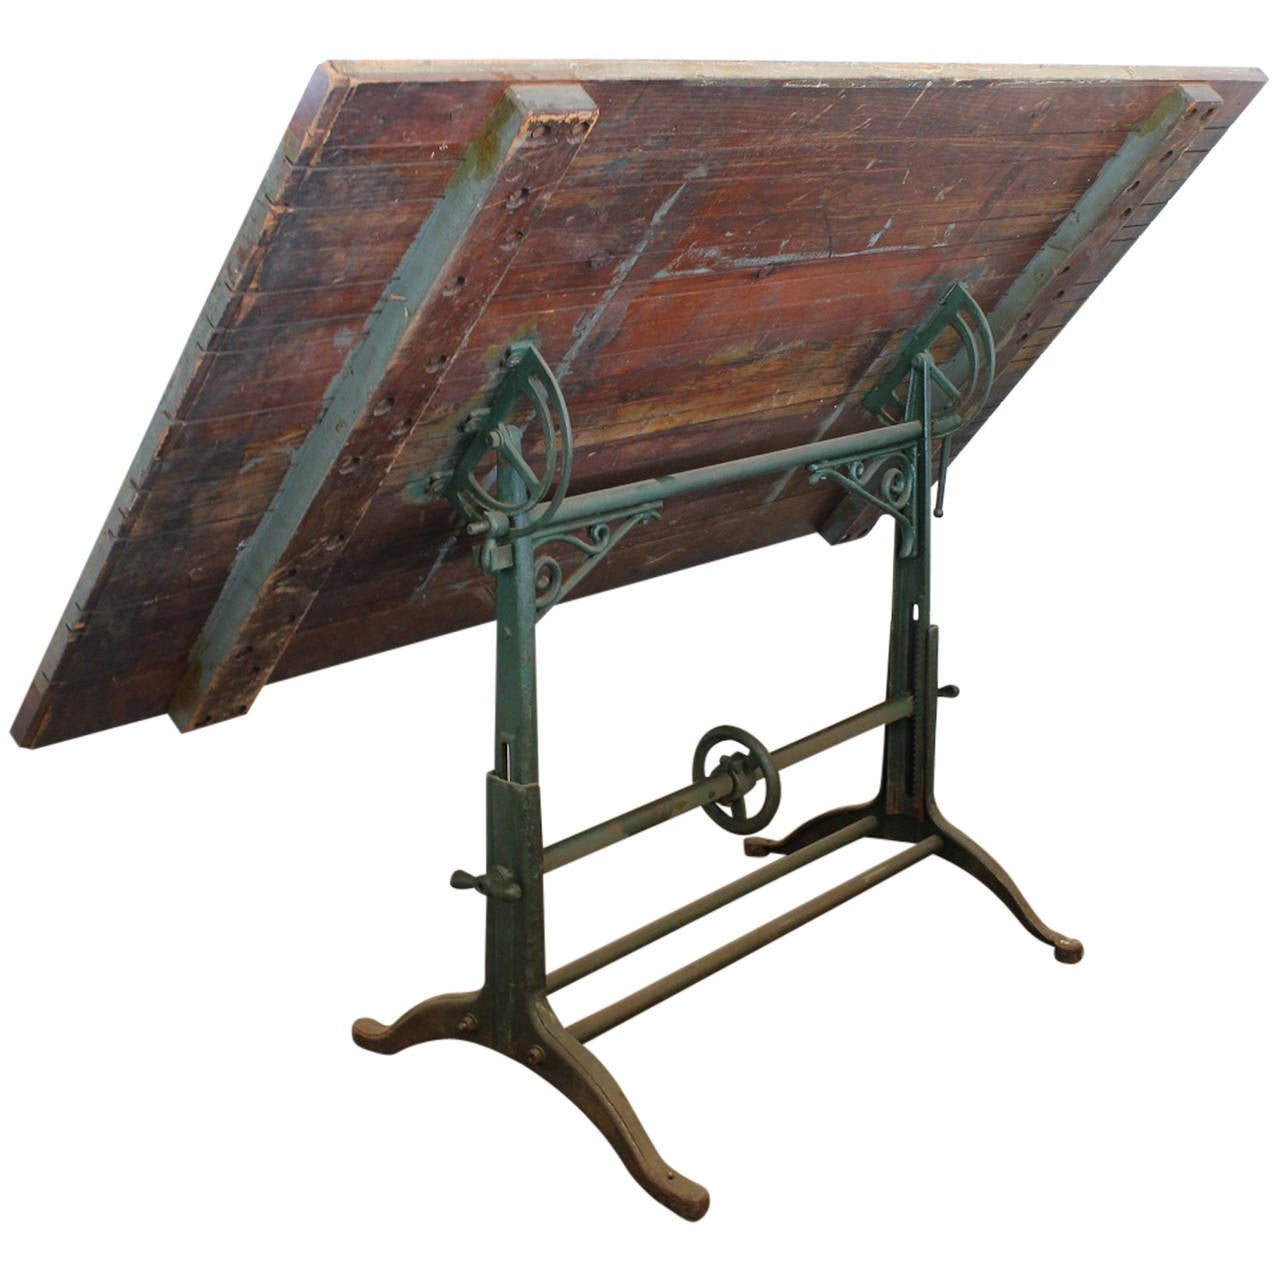 This Antique American Drafting Table Is No Longer Available